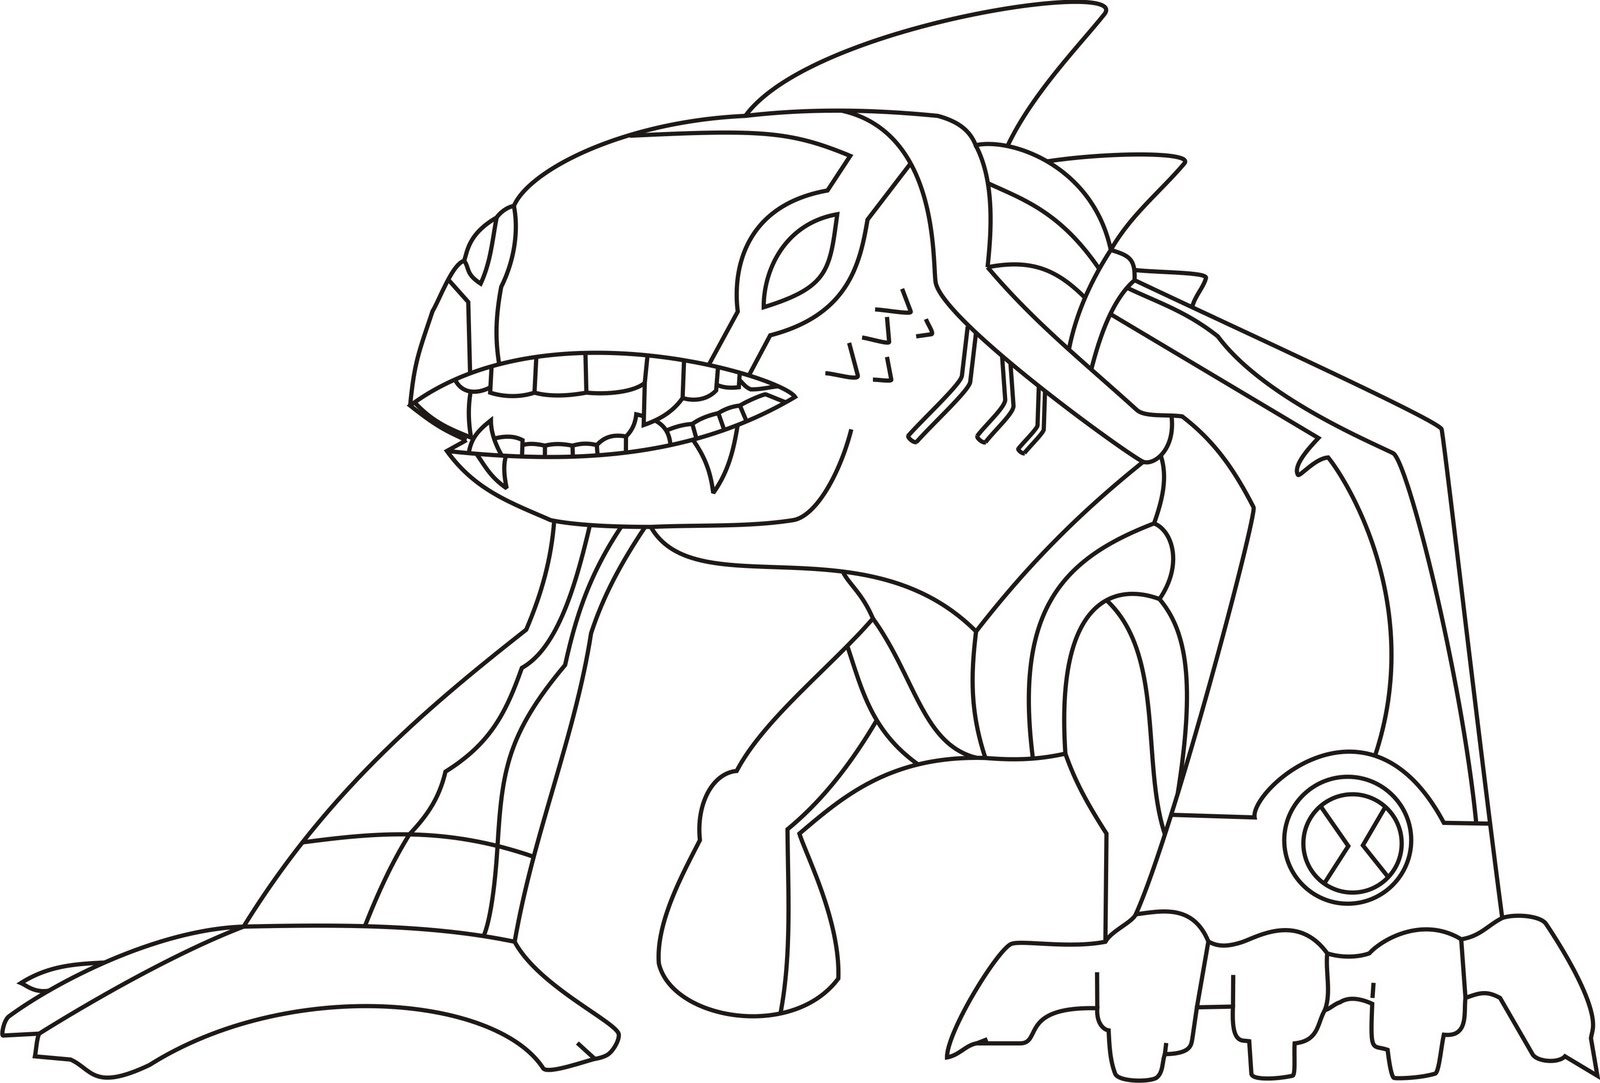 Download Ben 10 Coloring Pages